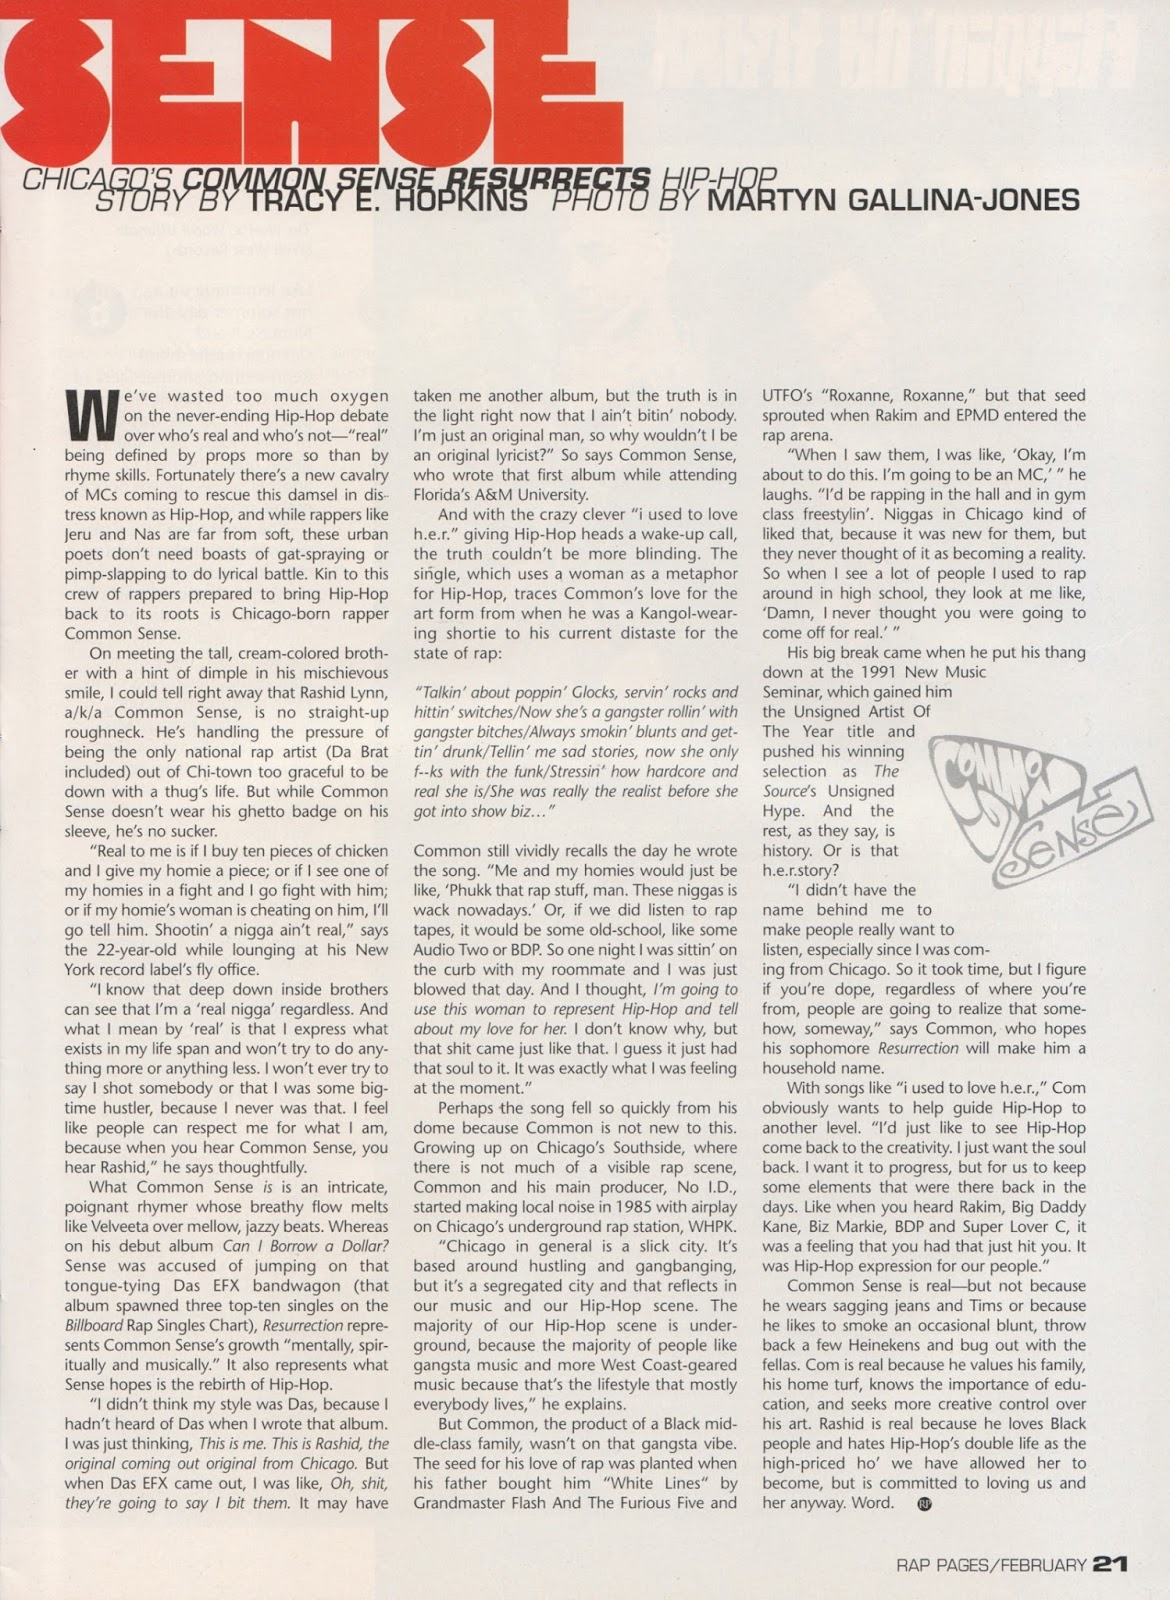 Common (Sense) in Rap Pages (February, 1995) Page 21